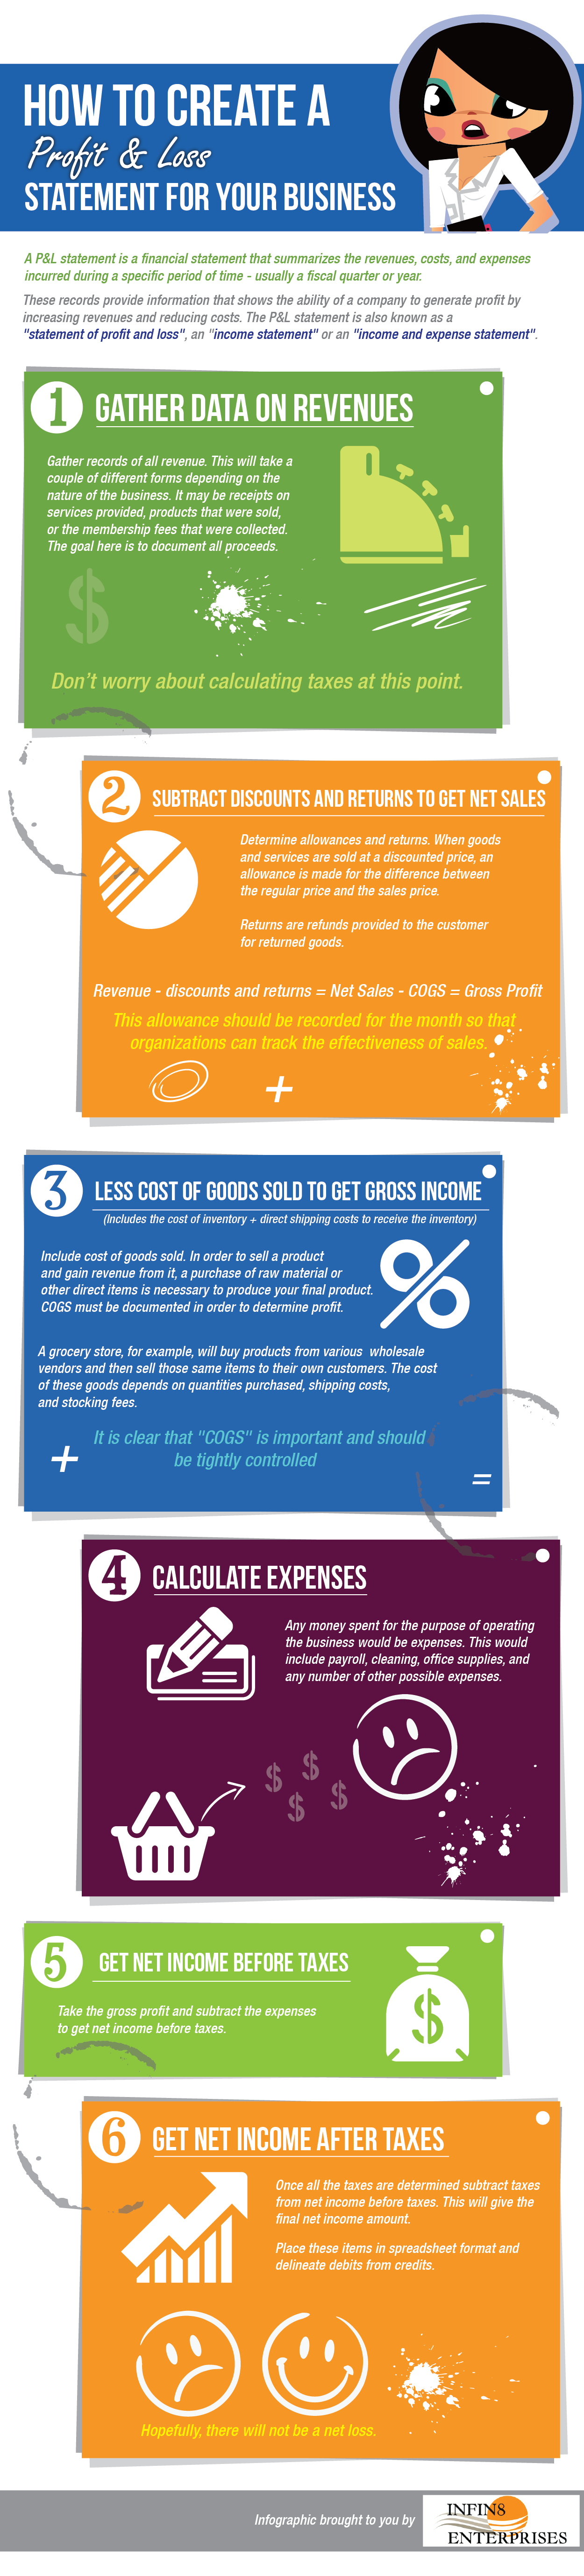 How Do I Make A Profit And Loss Statement Interesting How To Create A P Infographic Www.infin8Llc  Business Articles .